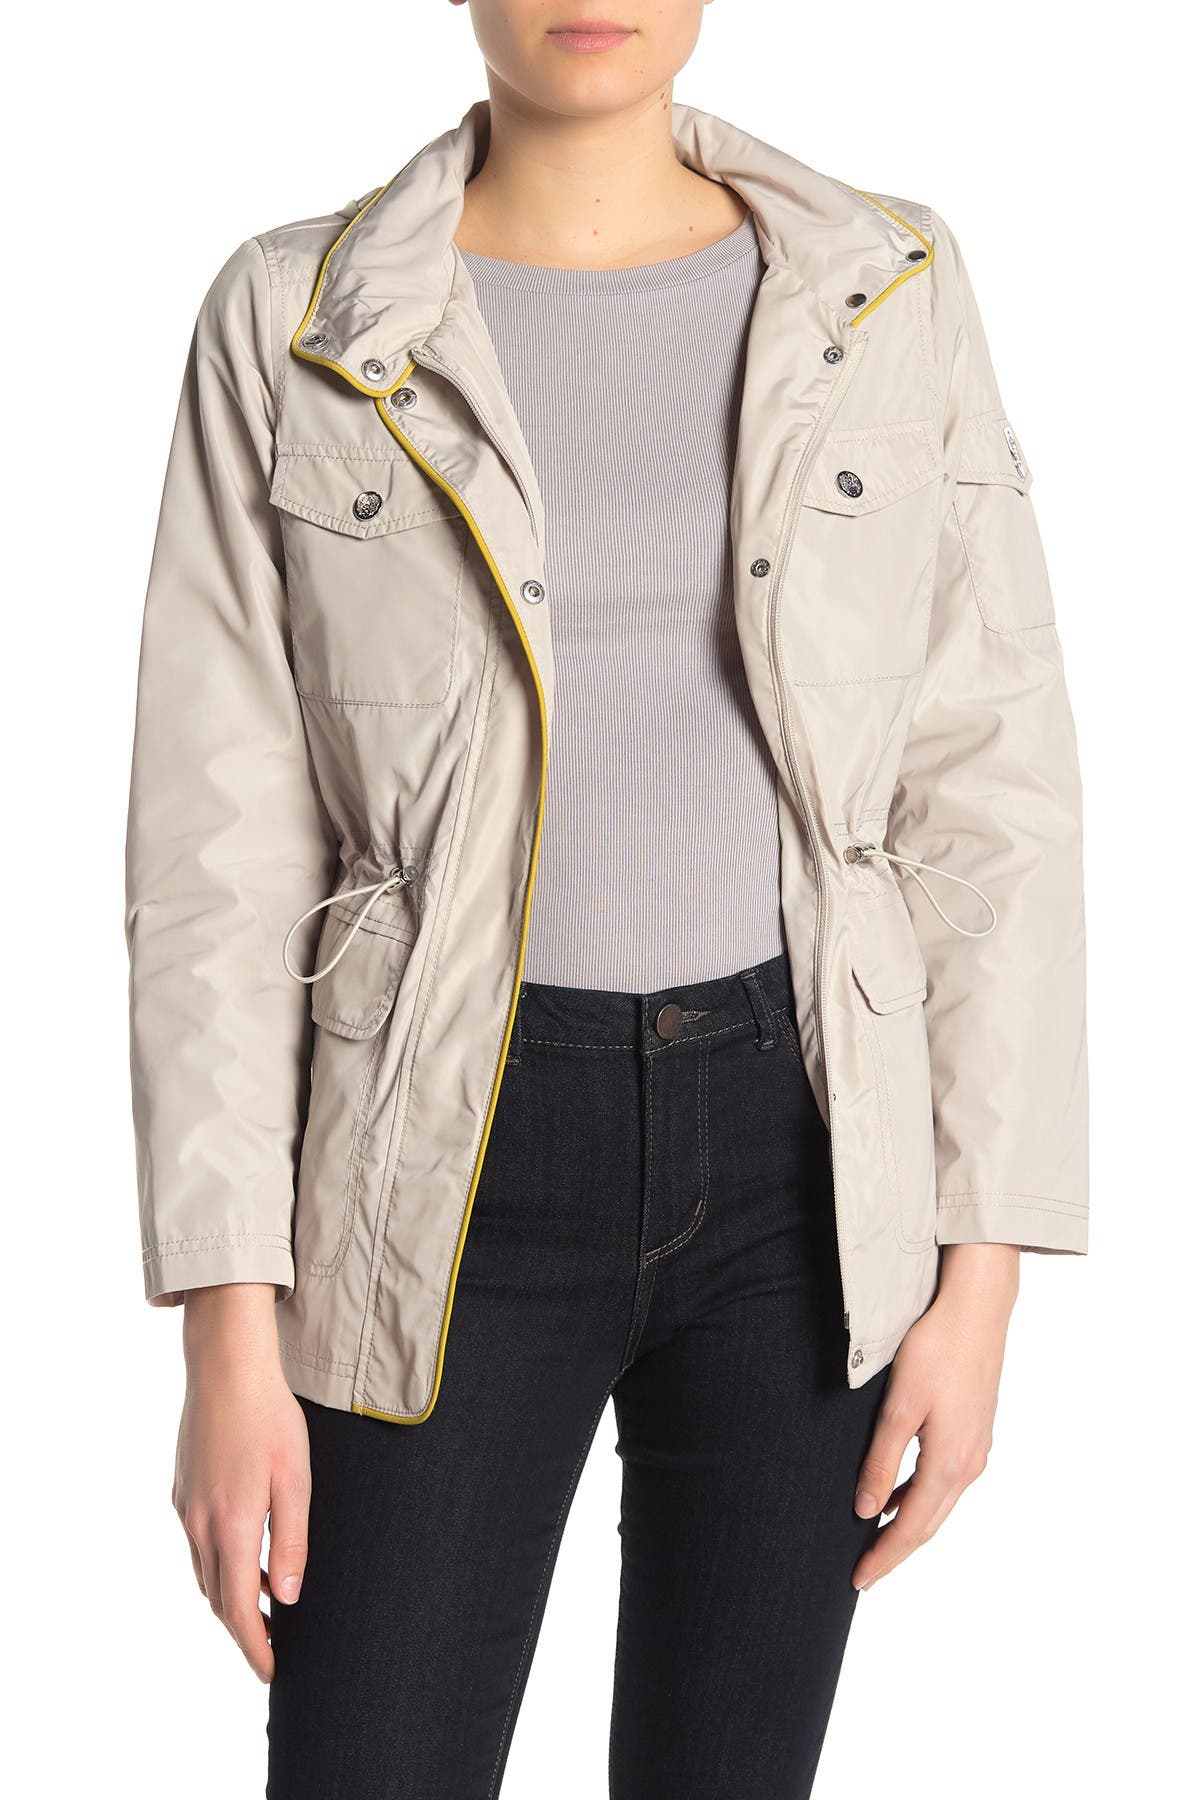 Image of Vince Camuto Cinched Waist Rain Coat